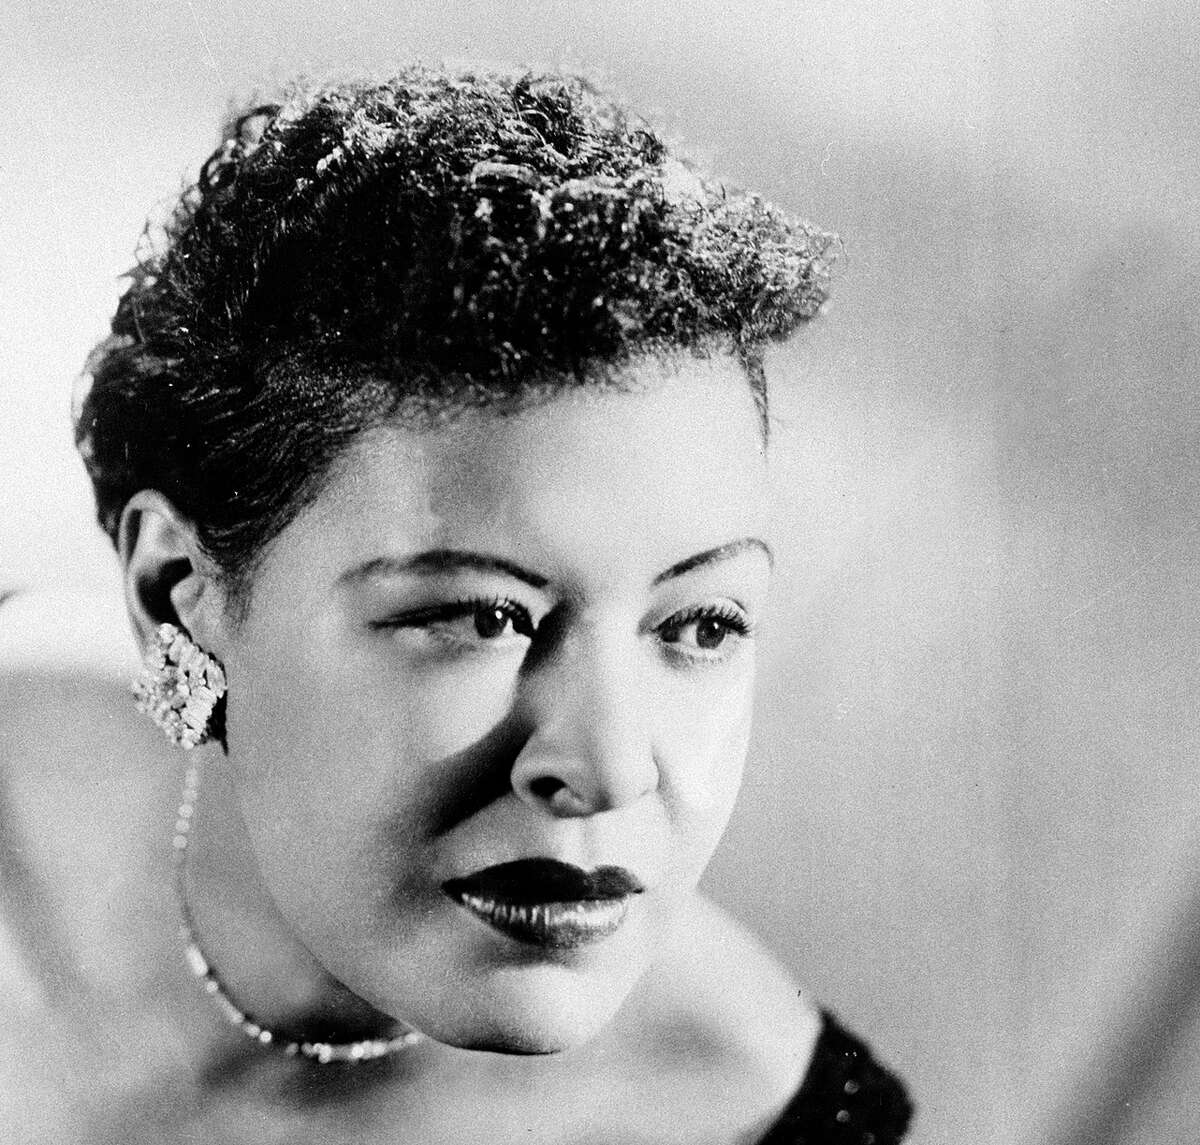 FILE - This Sept. 1958 file photo shows Billie Holiday. The Apollo Theater is planning events to commemorate the 100th birthday of Holiday. The legendary American jazz vocalist was born on April 17, 1915 and died in 1959 at the age of 44. Holiday performed at least two dozen times at the Apollo. She will be inducted into its Walk of Fame on April 16, 2015. (AP Photo/FILE)